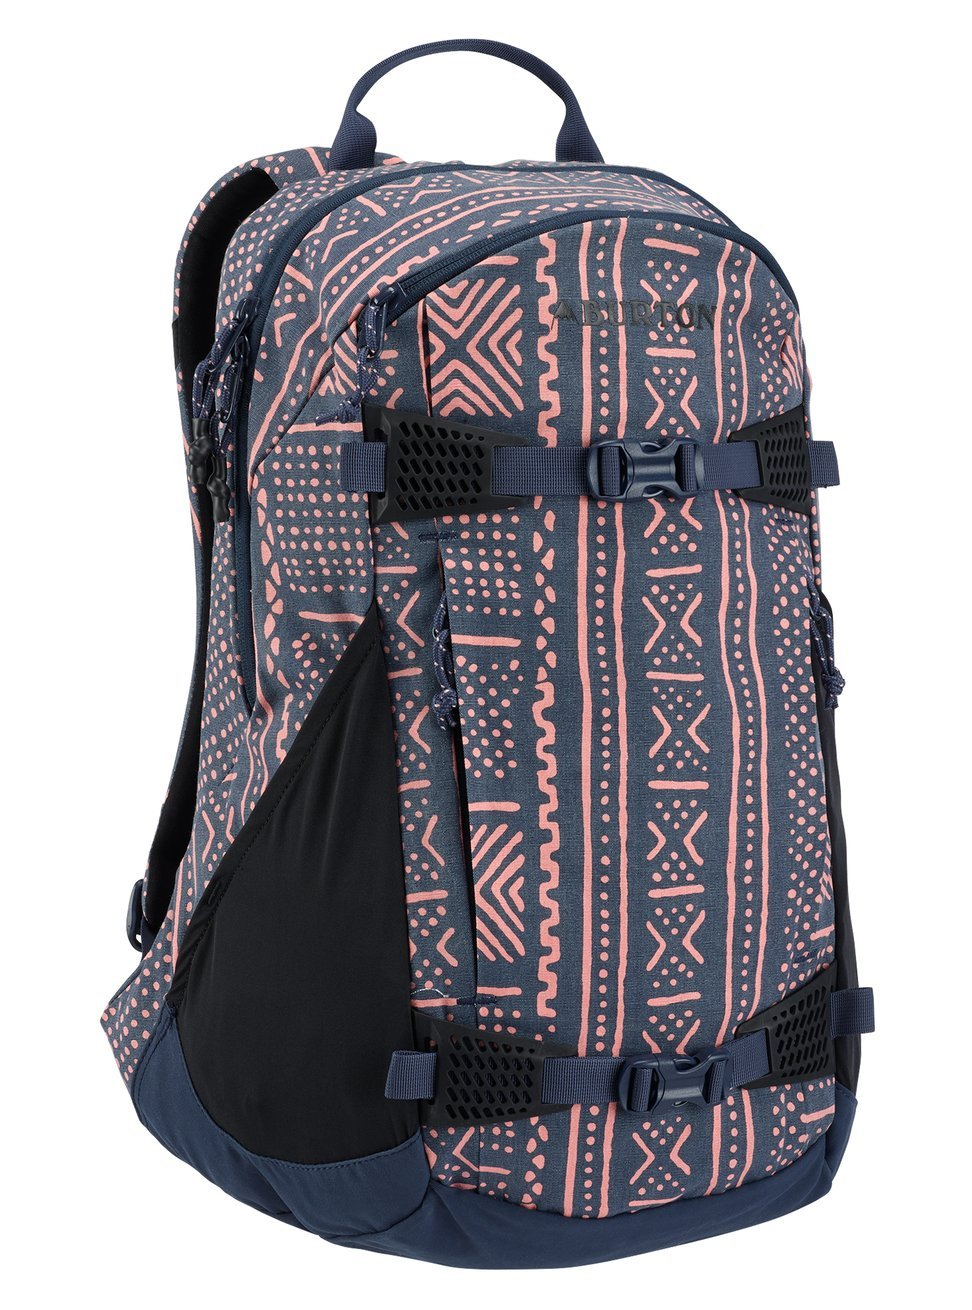 Day Hiker 25L Burton 15291105419 Sac à Dos Femme Mood Indigo Bambara Canvas Taille Unique